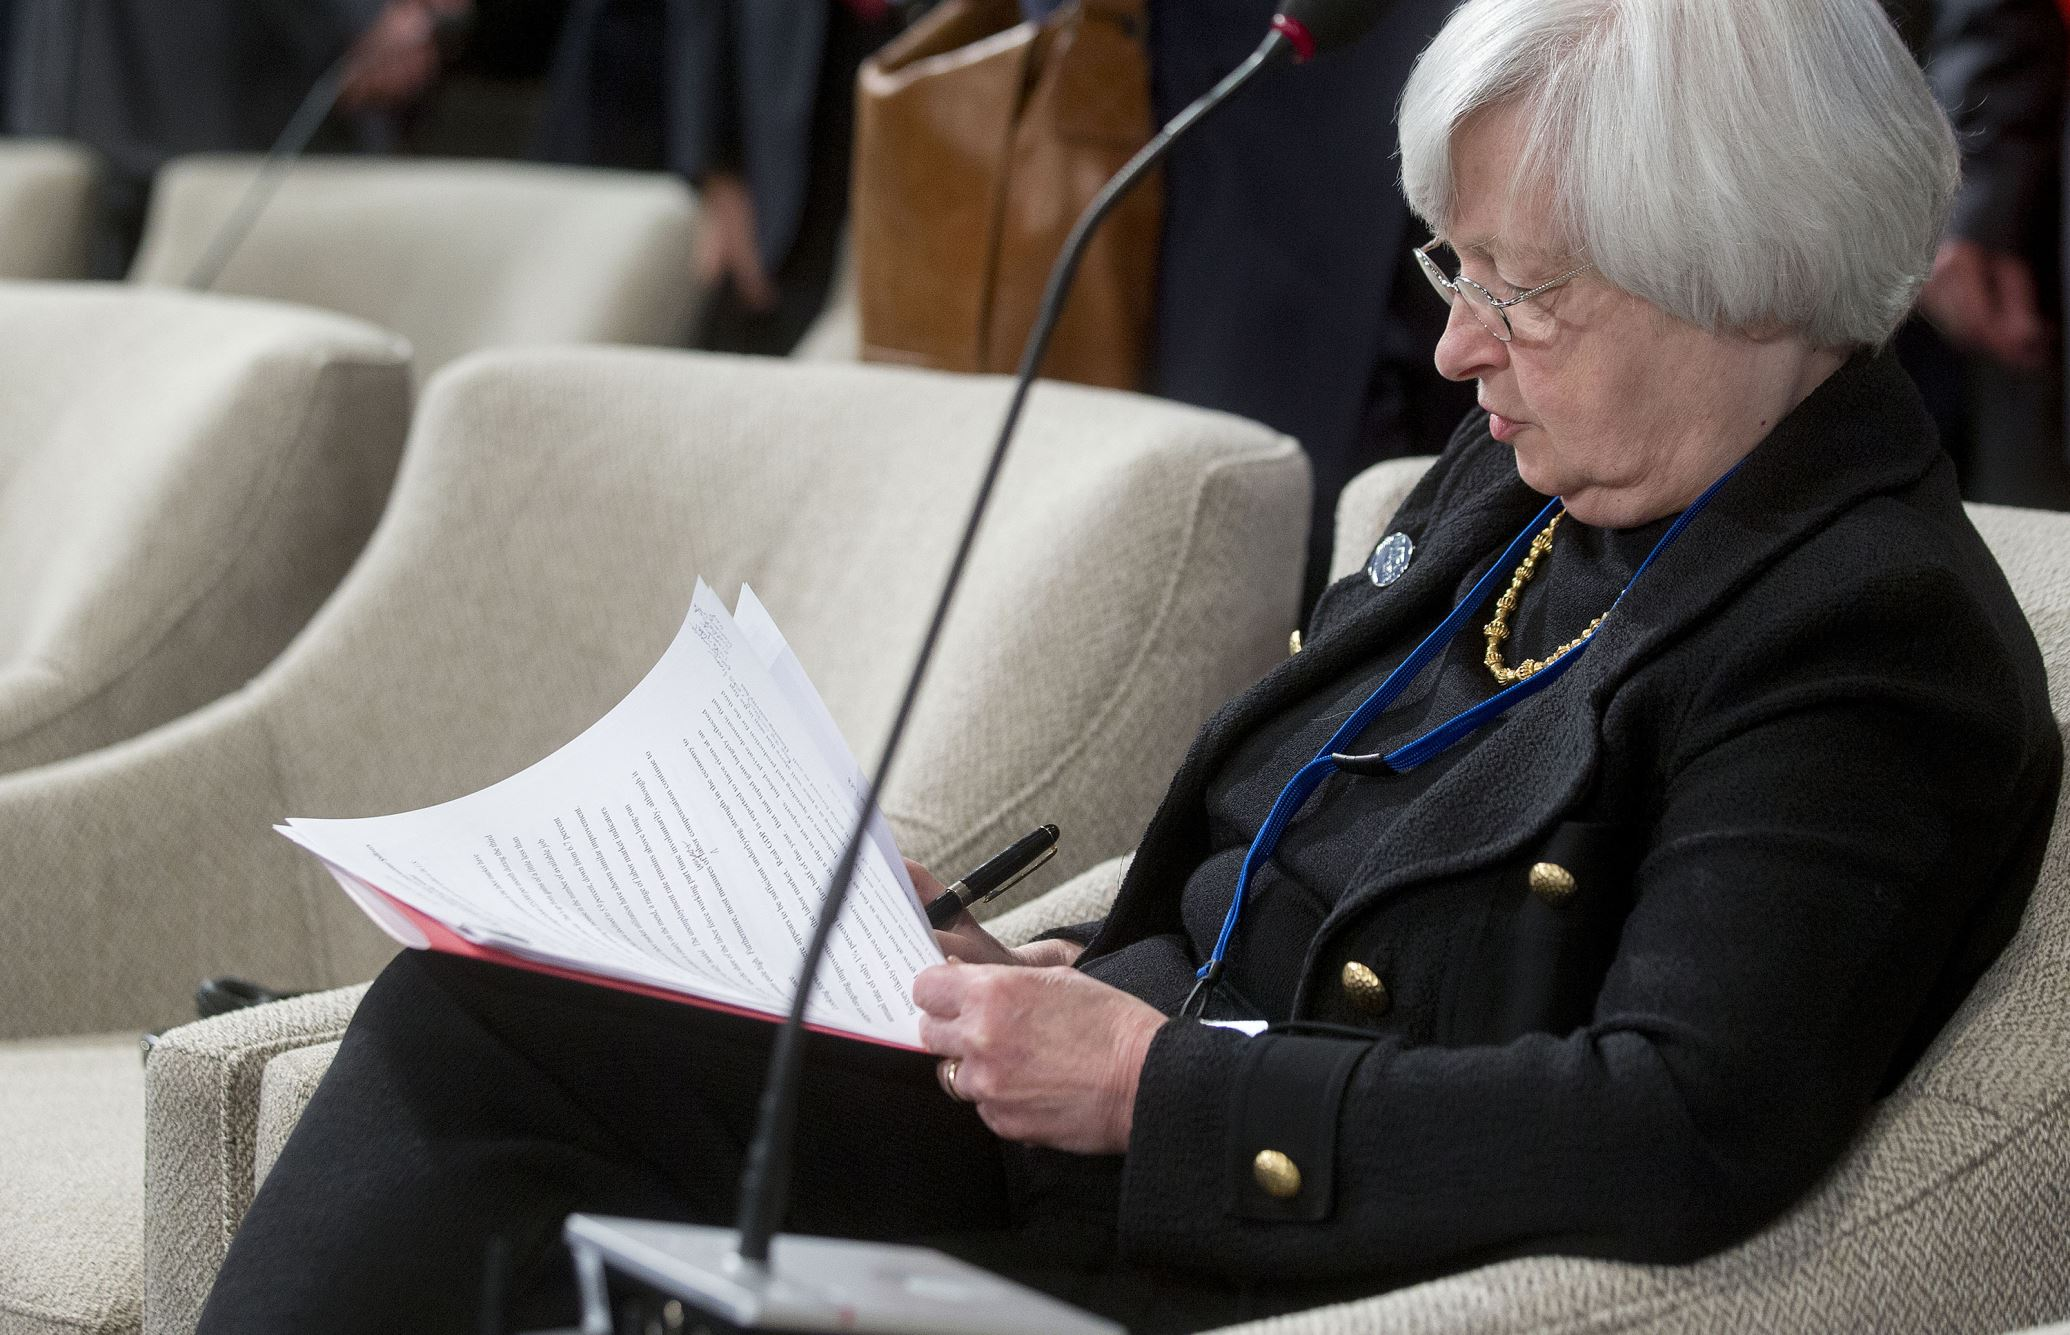 "<p>Federal Reserve Chair Janet Yellen said she's ""greatly"" concerned by the most sustained rise in U.S. wealth and income inequality since the 19th century, while declining to offer any policy prescriptions. </p>"